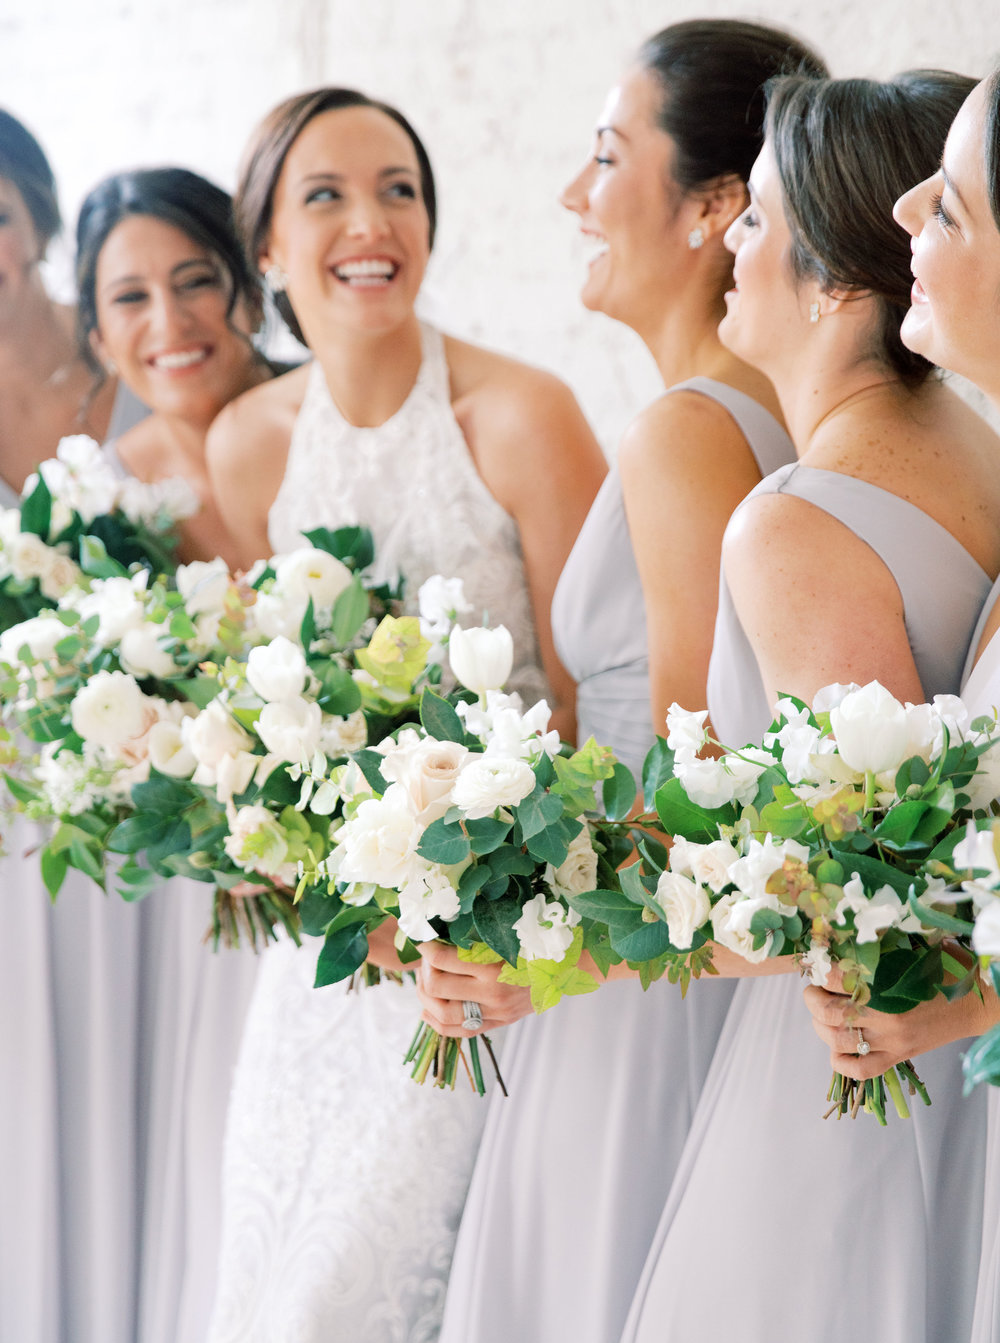 with-bridesmaids-in-light-grey.jpg